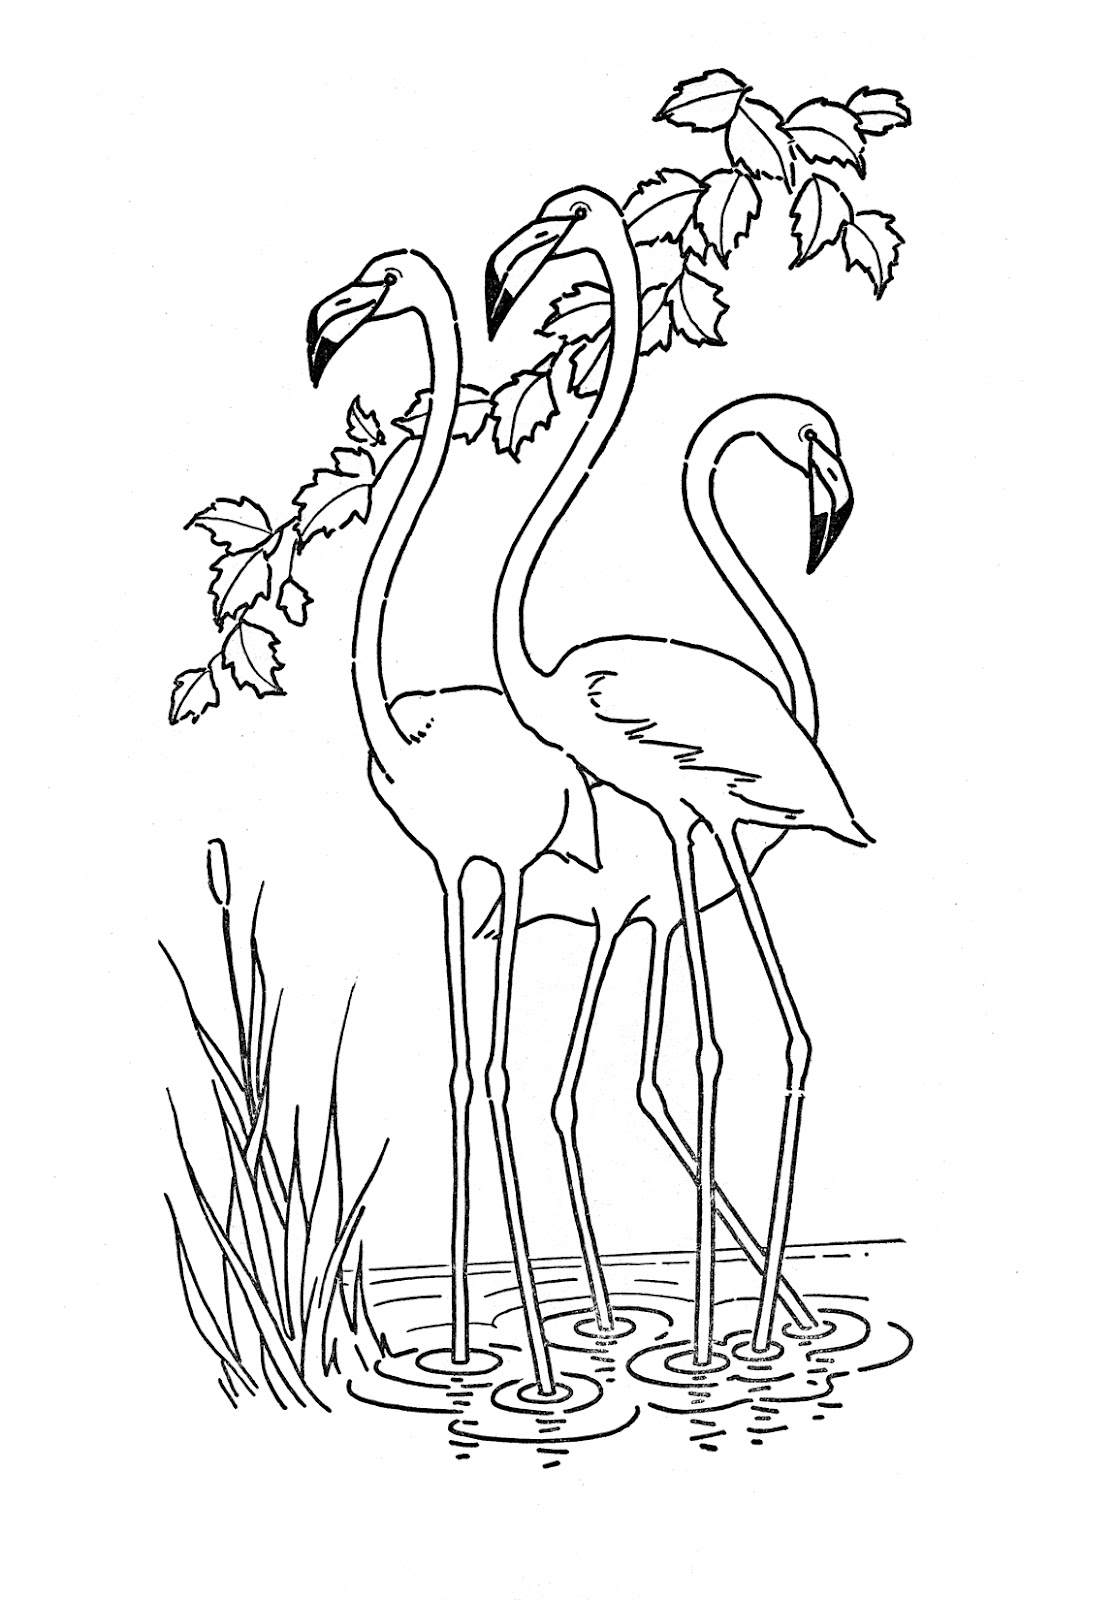 coloring art doodle coloring pages best coloring pages for kids coloring art 1 2